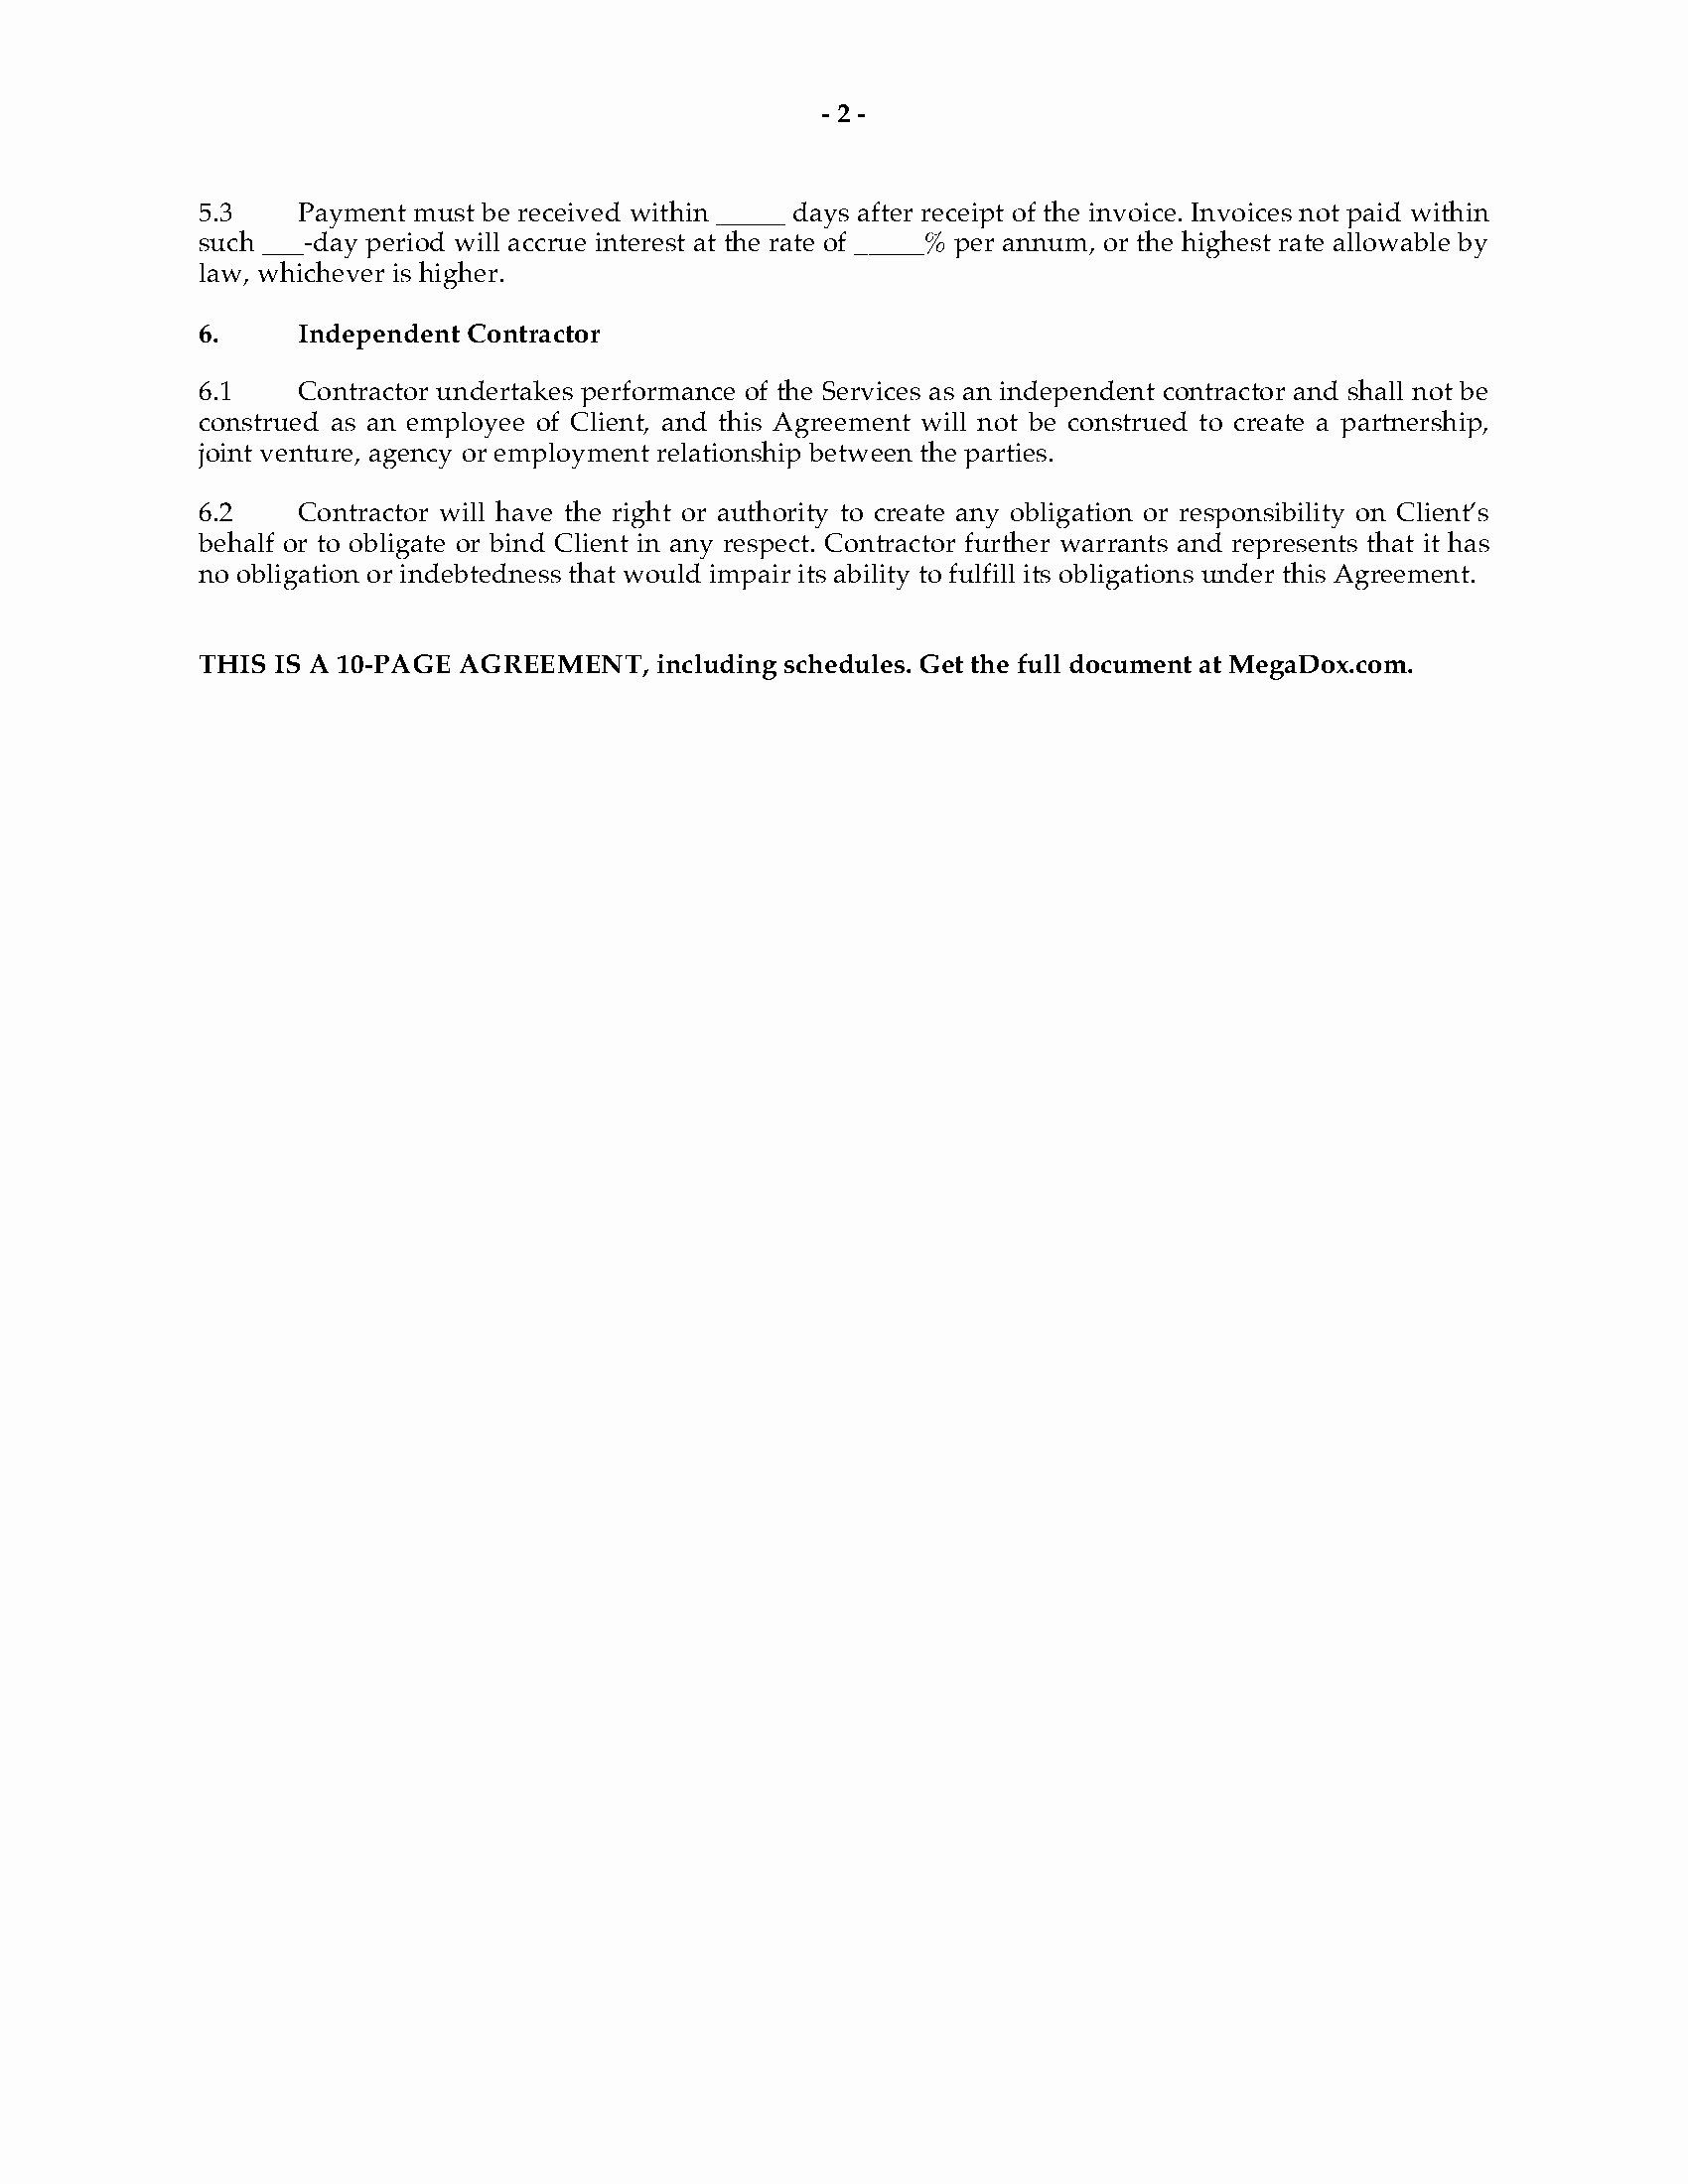 Security Guard Contracts Template Inspirational Usa Security Guard Services Agreement Contract Template Security Guard Services Security Guard